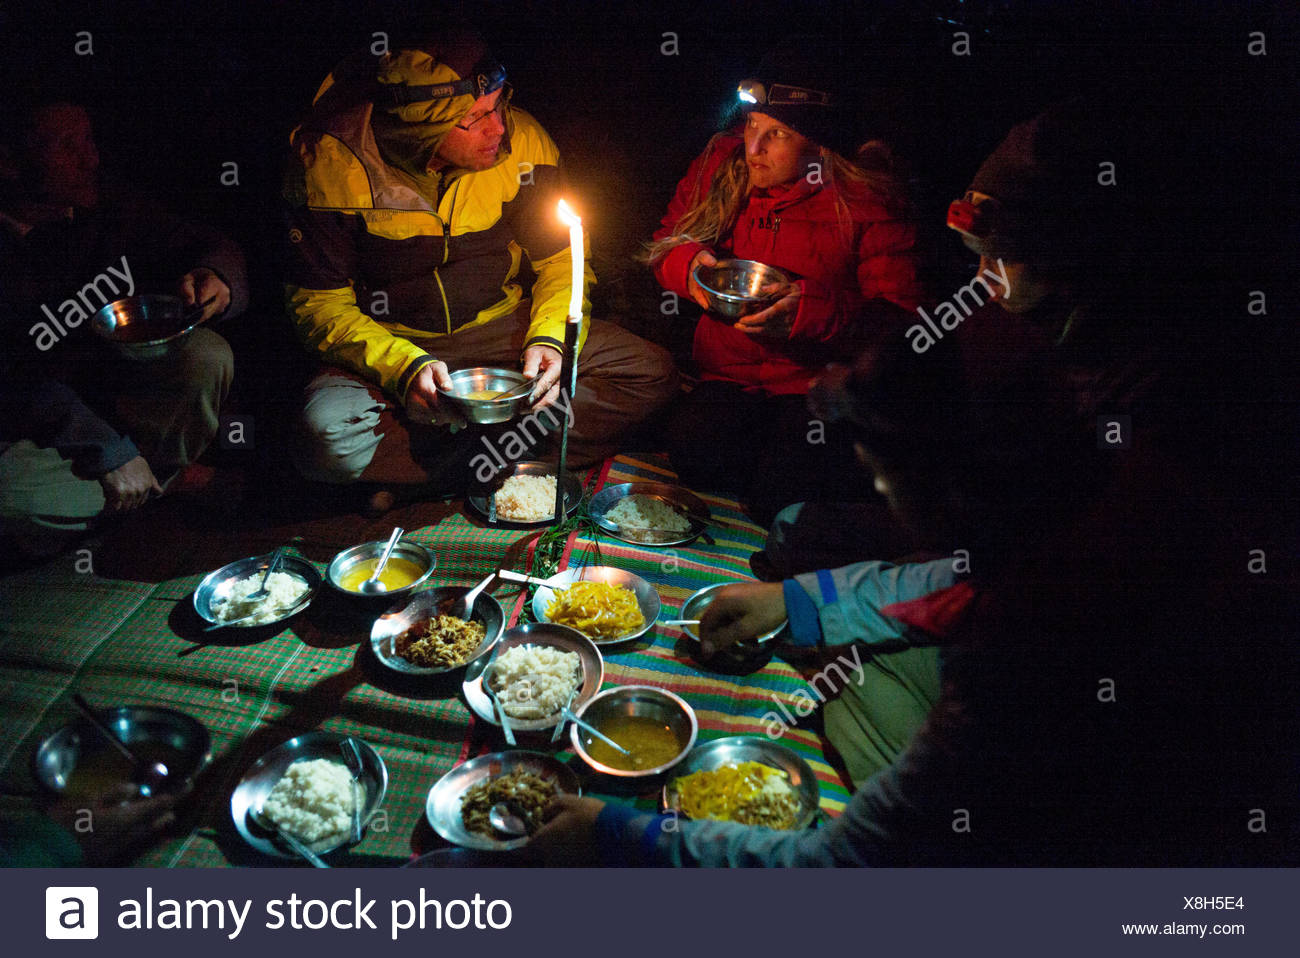 Expedition members sit on a mat and eat a meal by candlelight. - Stock Image